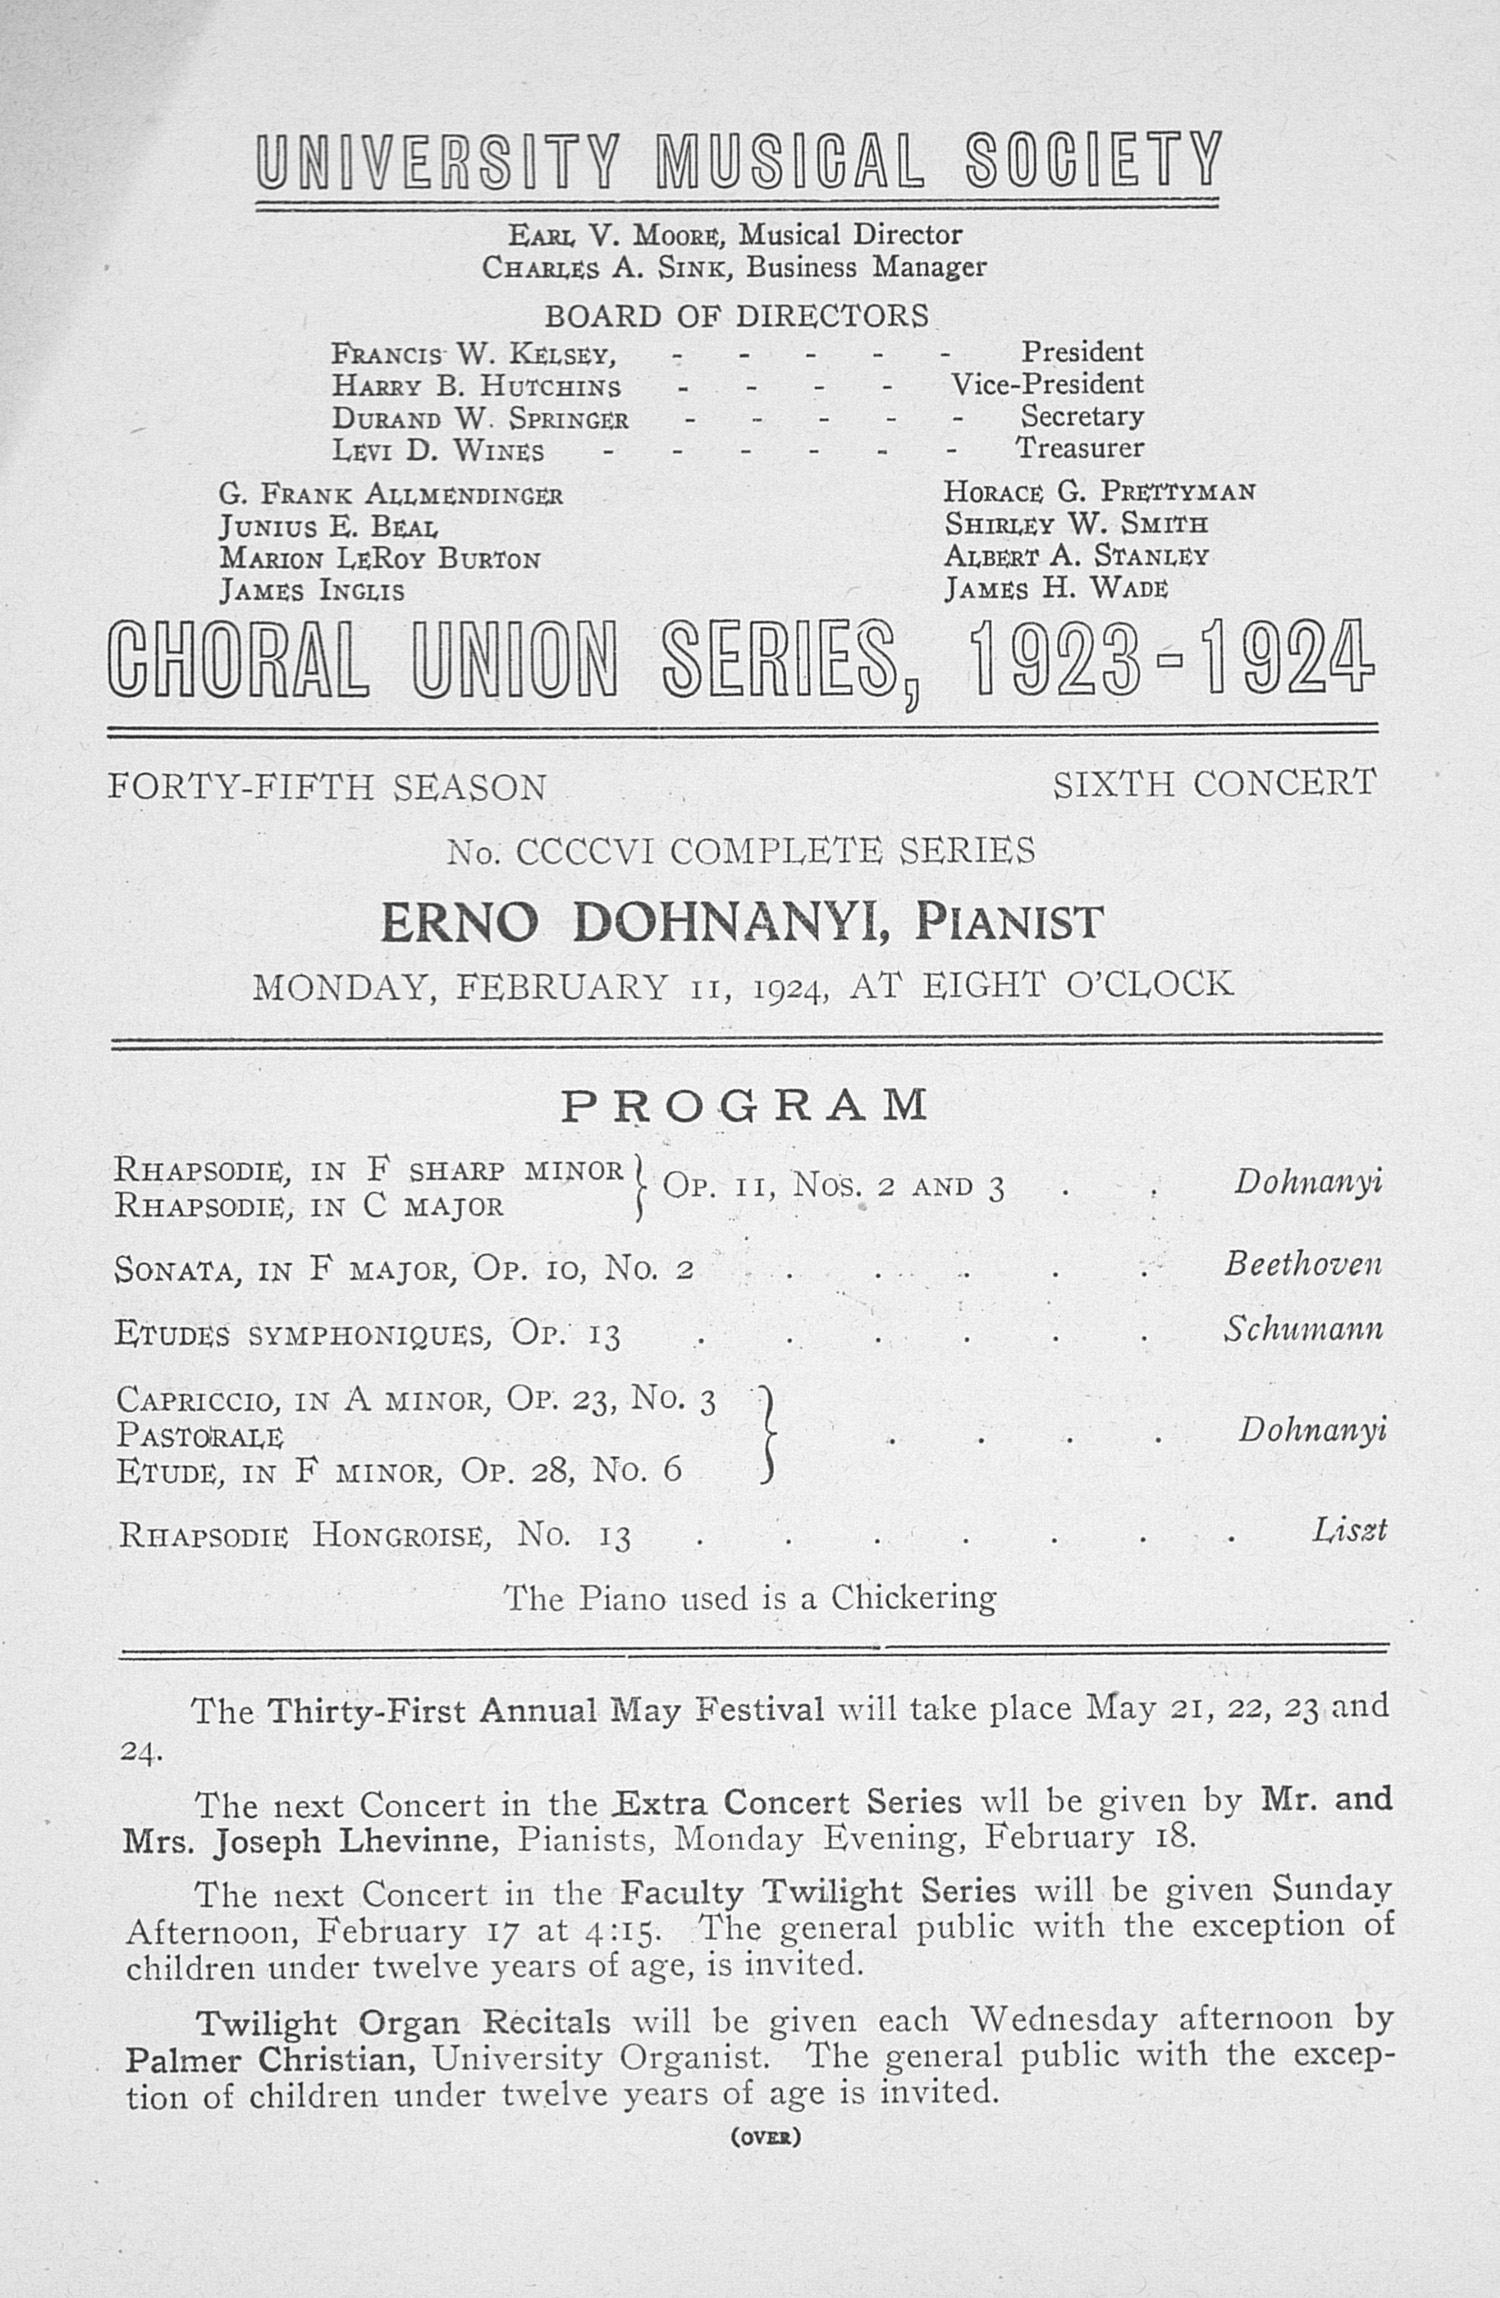 UMS Concert Program, February 11, 1924: Choral Union Series -- Erno Dohnanyi image